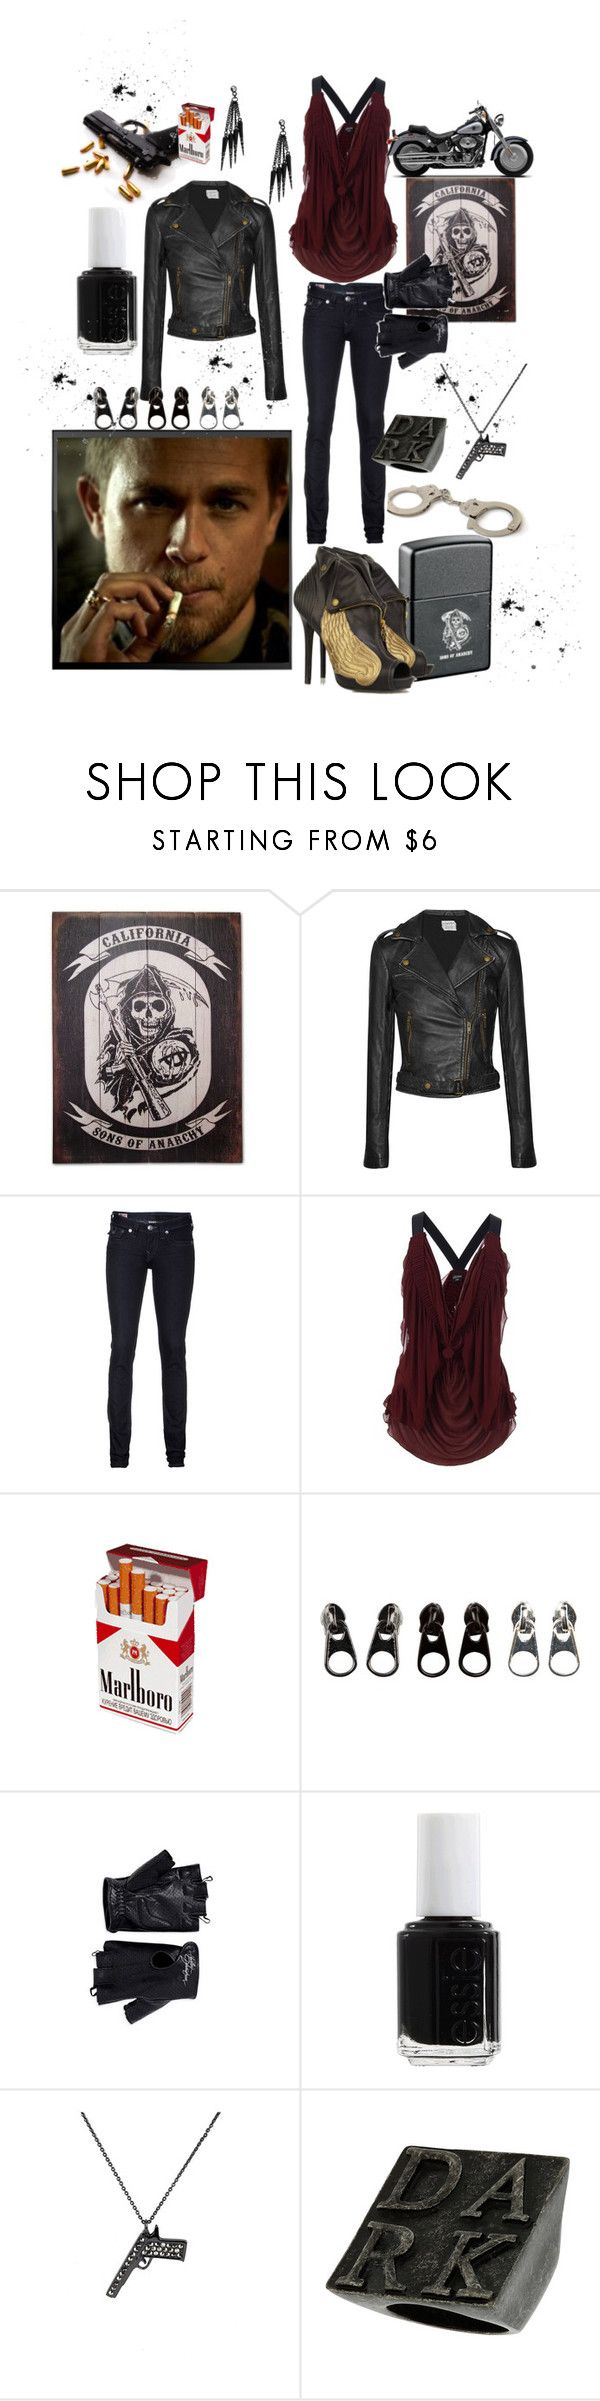 """""""Jax Teller- SOA"""" by caseyparke ❤ liked on Polyvore featuring Sons of Anarchy, Zippo, Current/Elliott, Alexander McQueen, True Religion, Jean-Paul Gaultier, Full Tilt, Harley-Davidson, Essie and Zadig & Voltaire"""